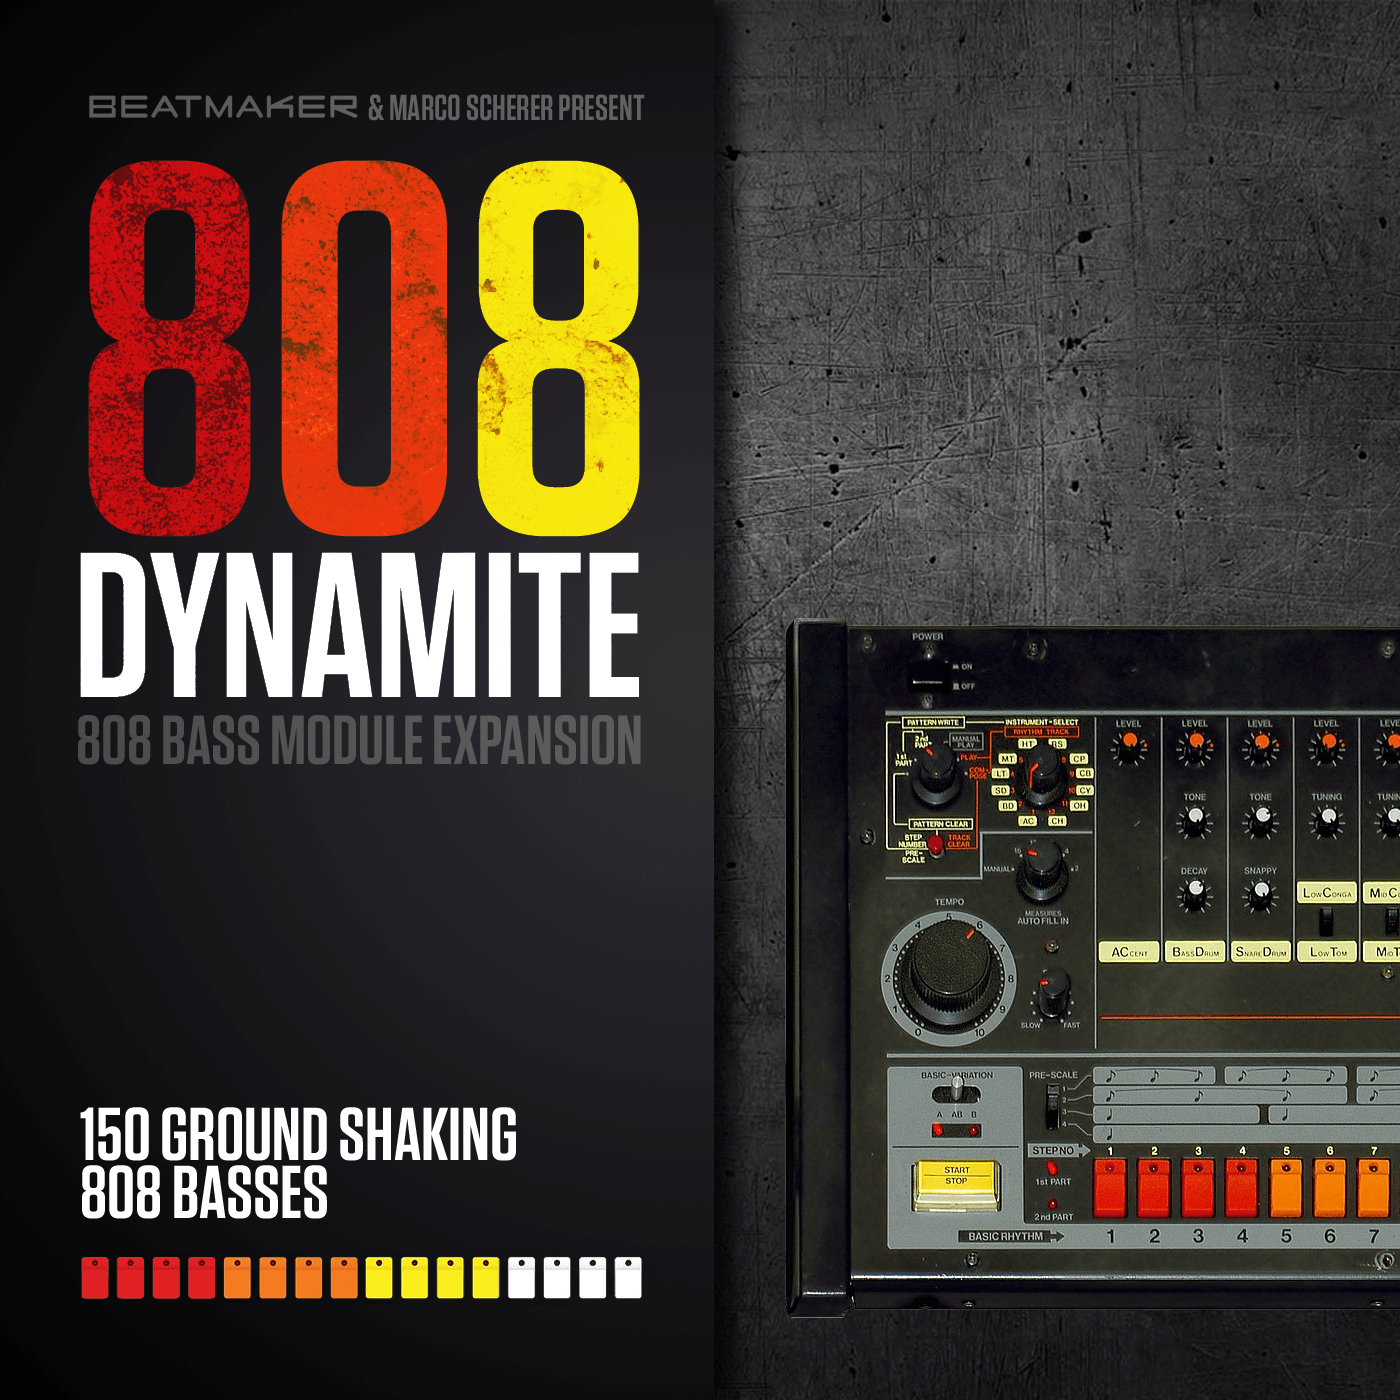 808 Dynamite Expansion for Beatmaker Bass Module III